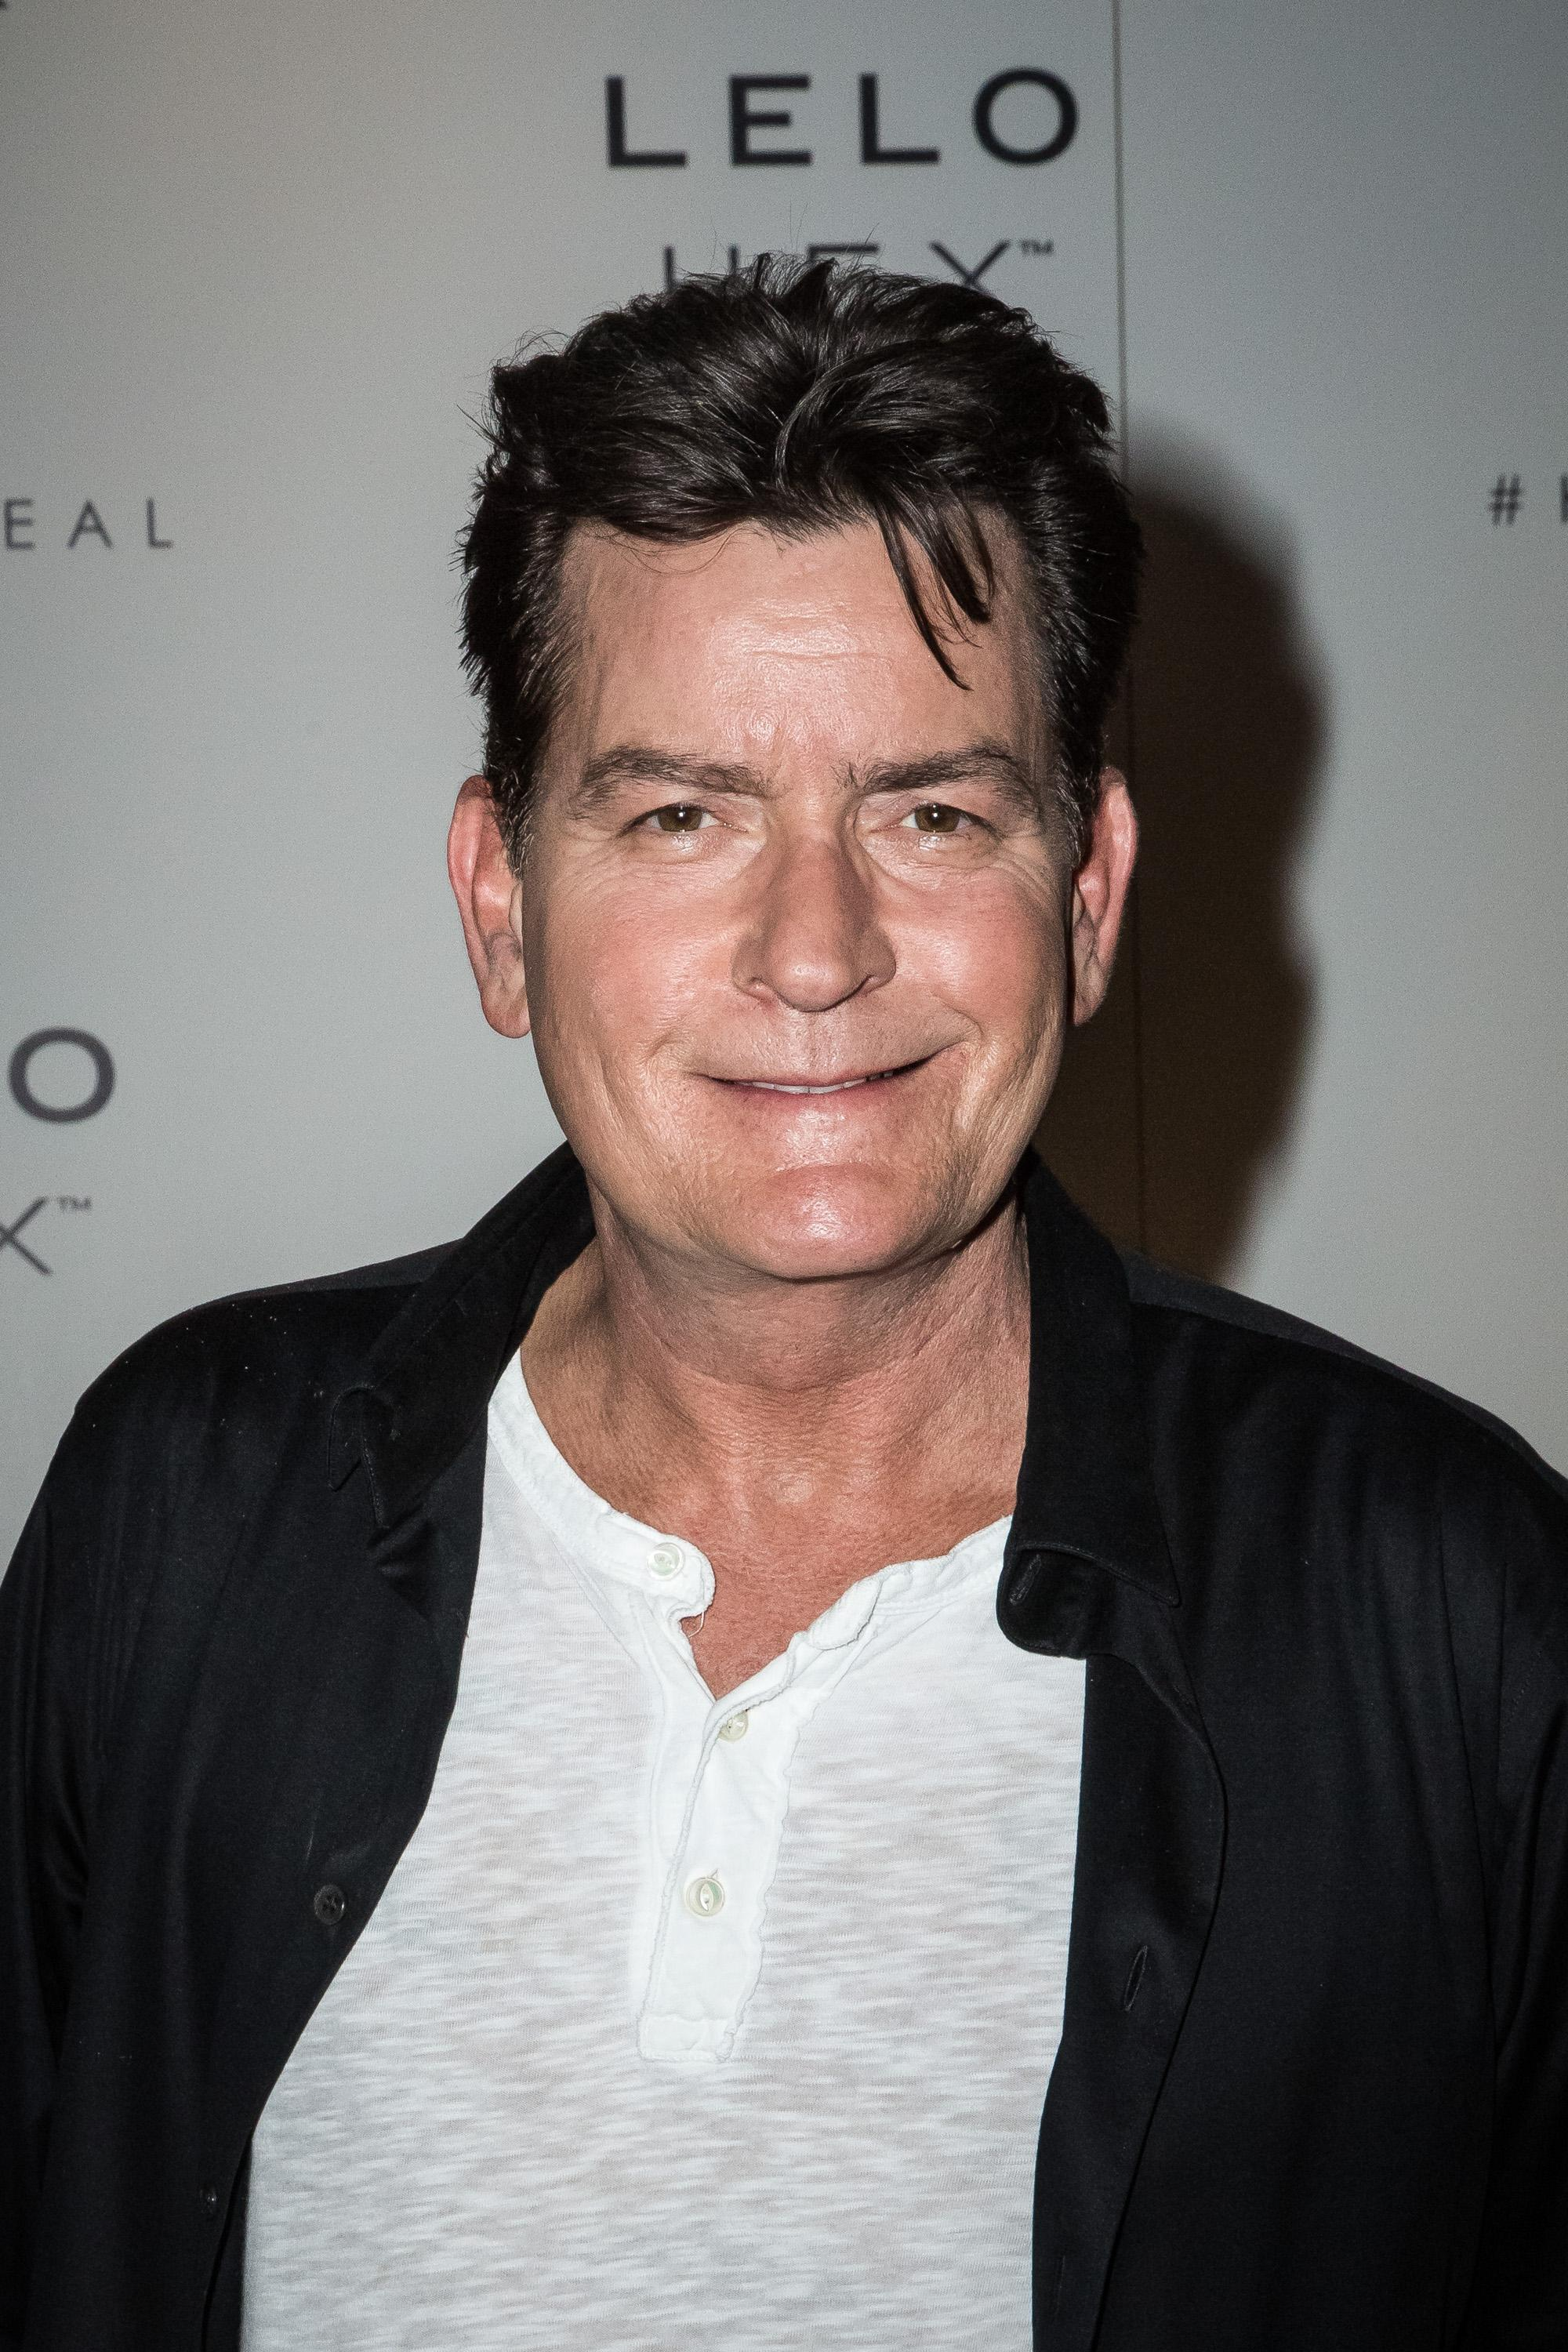 Charlie sheen sues tabloid over assault allegation the spokesman american actor charlie sheen ambassador of the condom brand lelo hex poses thecheapjerseys Image collections